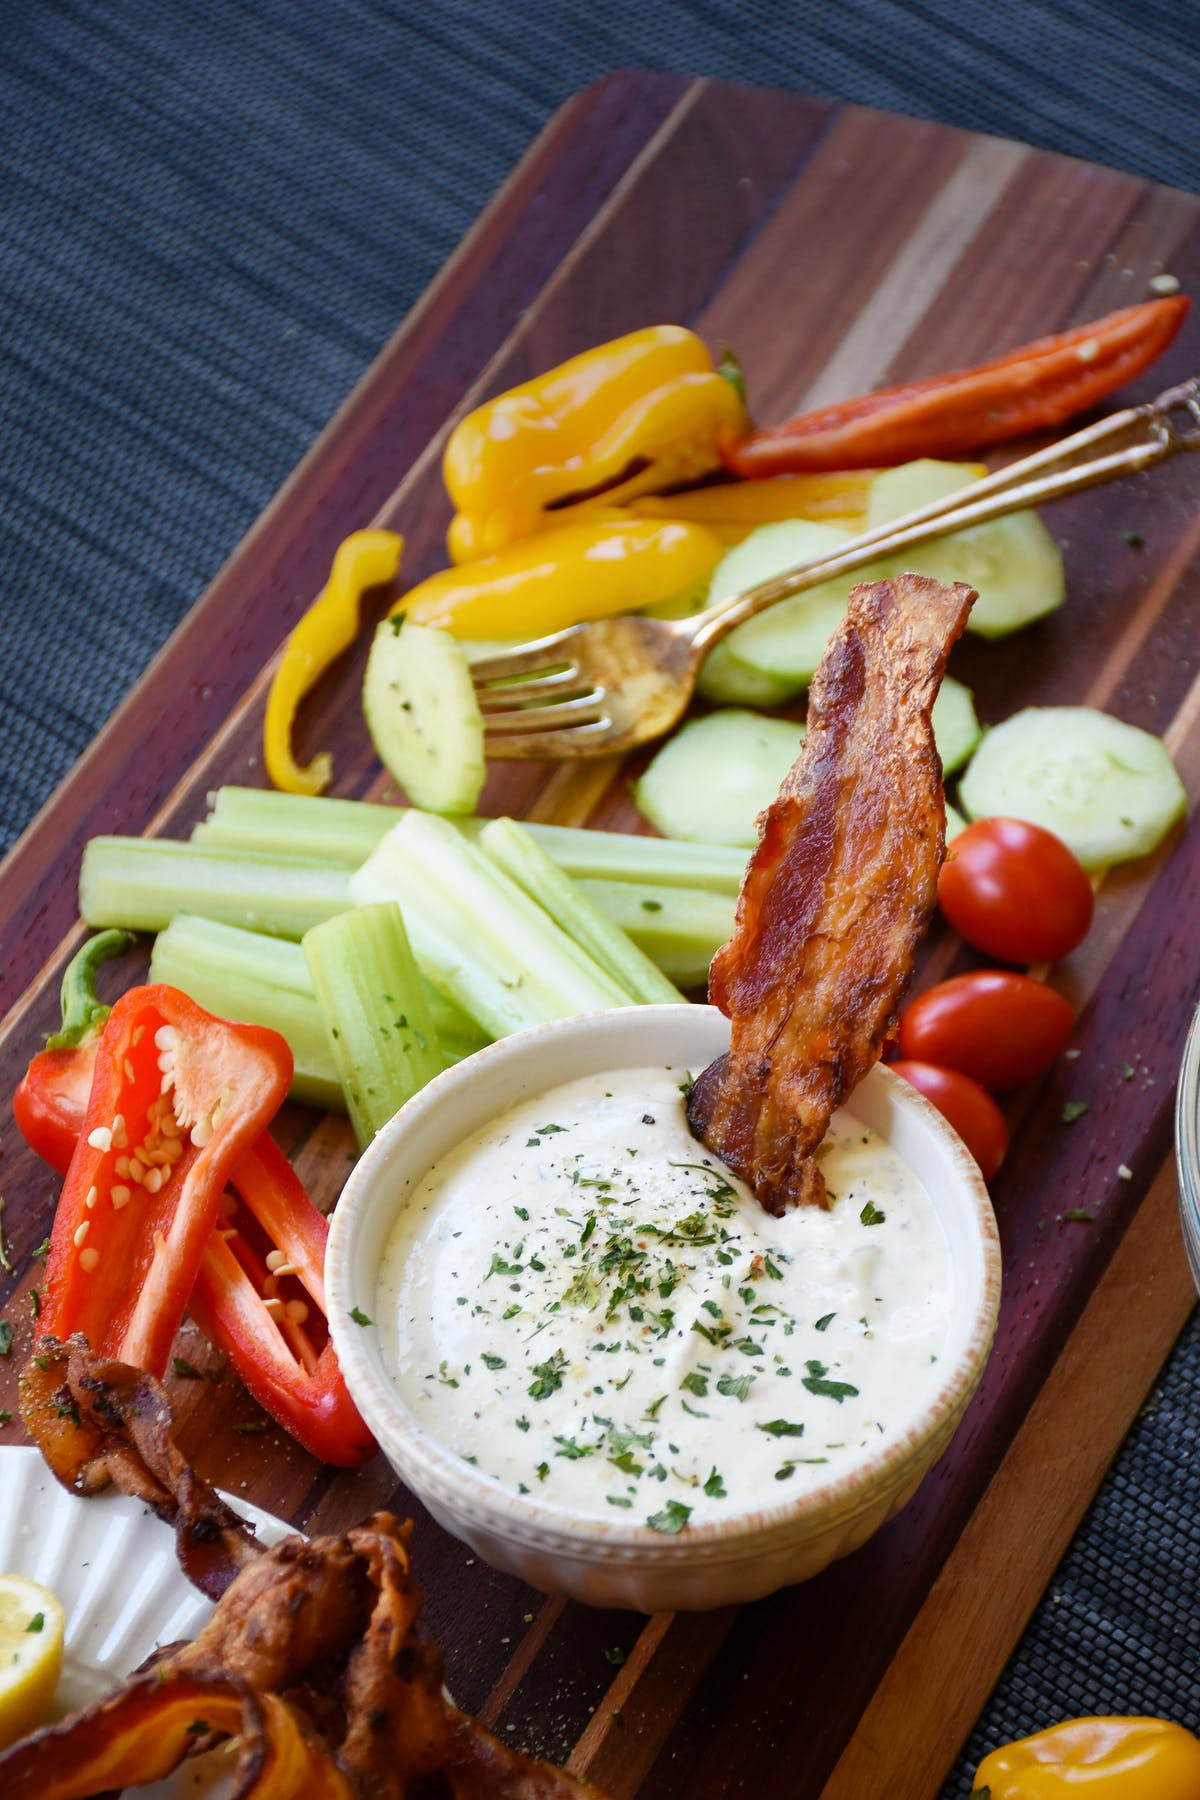 Low-carb Ranch dressing with baked bacon and veggies